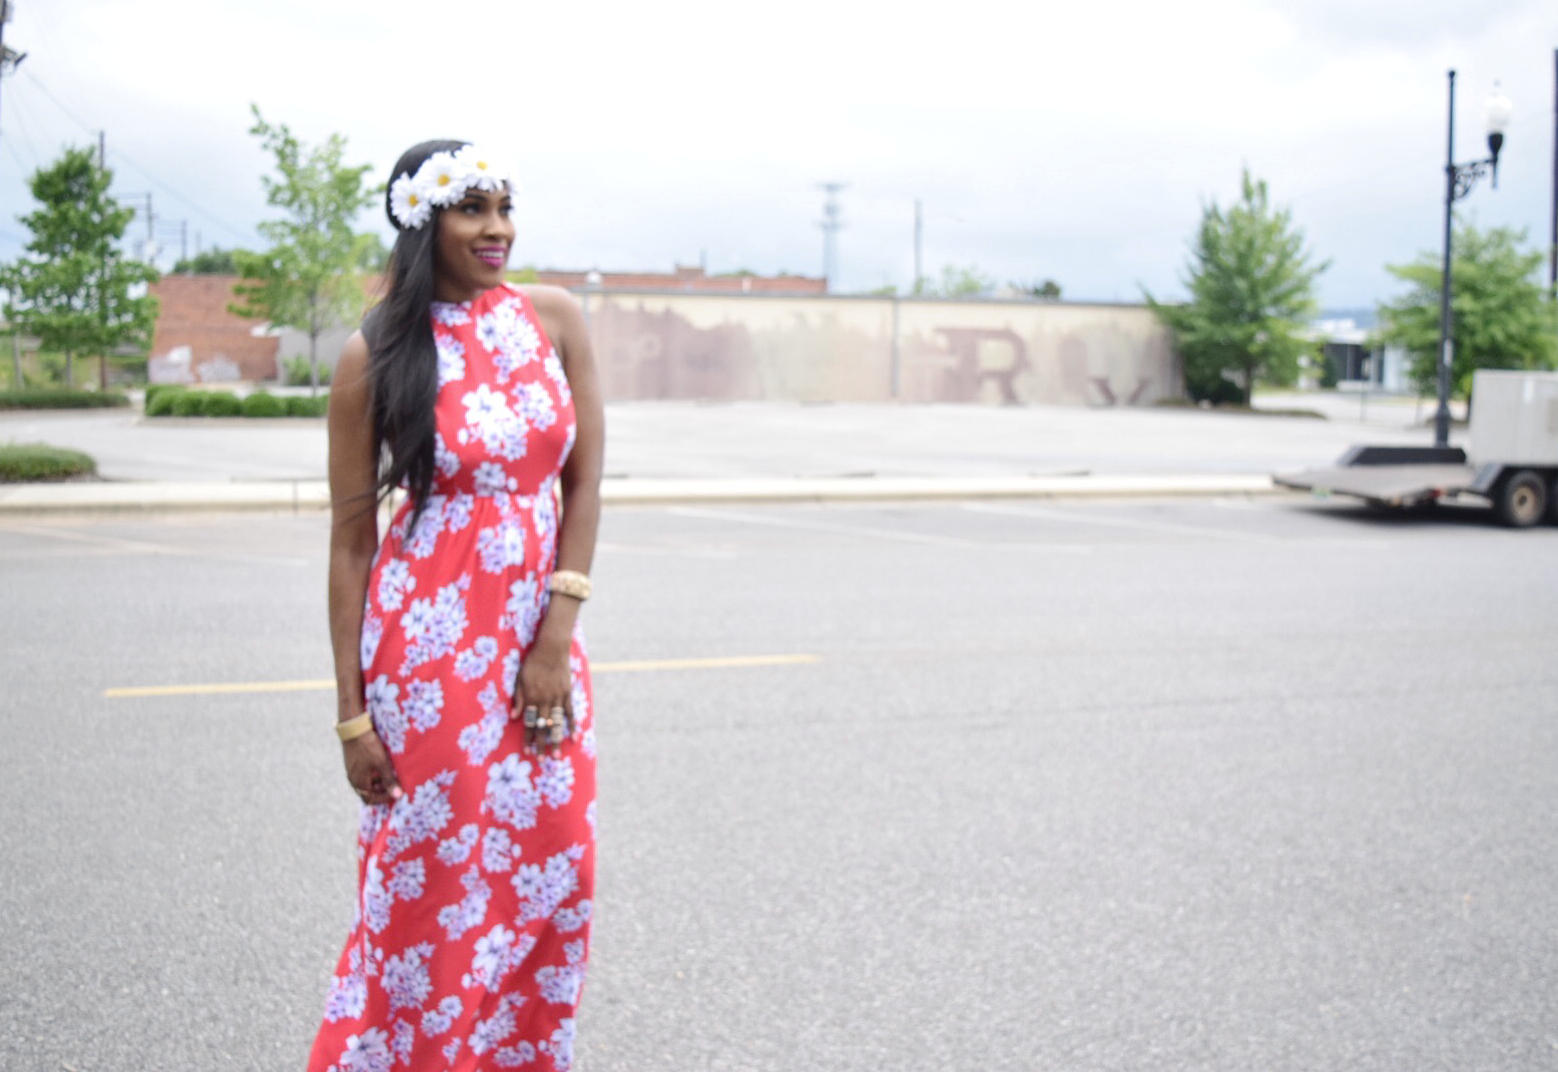 Style-files-forever-21-red-maxi-floral-maxi-dress-criss-cross-back-strap-forever21-daisy-headband-red-justfab-fringe-sandals-Boohoo-Zoe-Square-Oversized Ombre-Frame Aviator-sungalsses-Oohlalablog-8